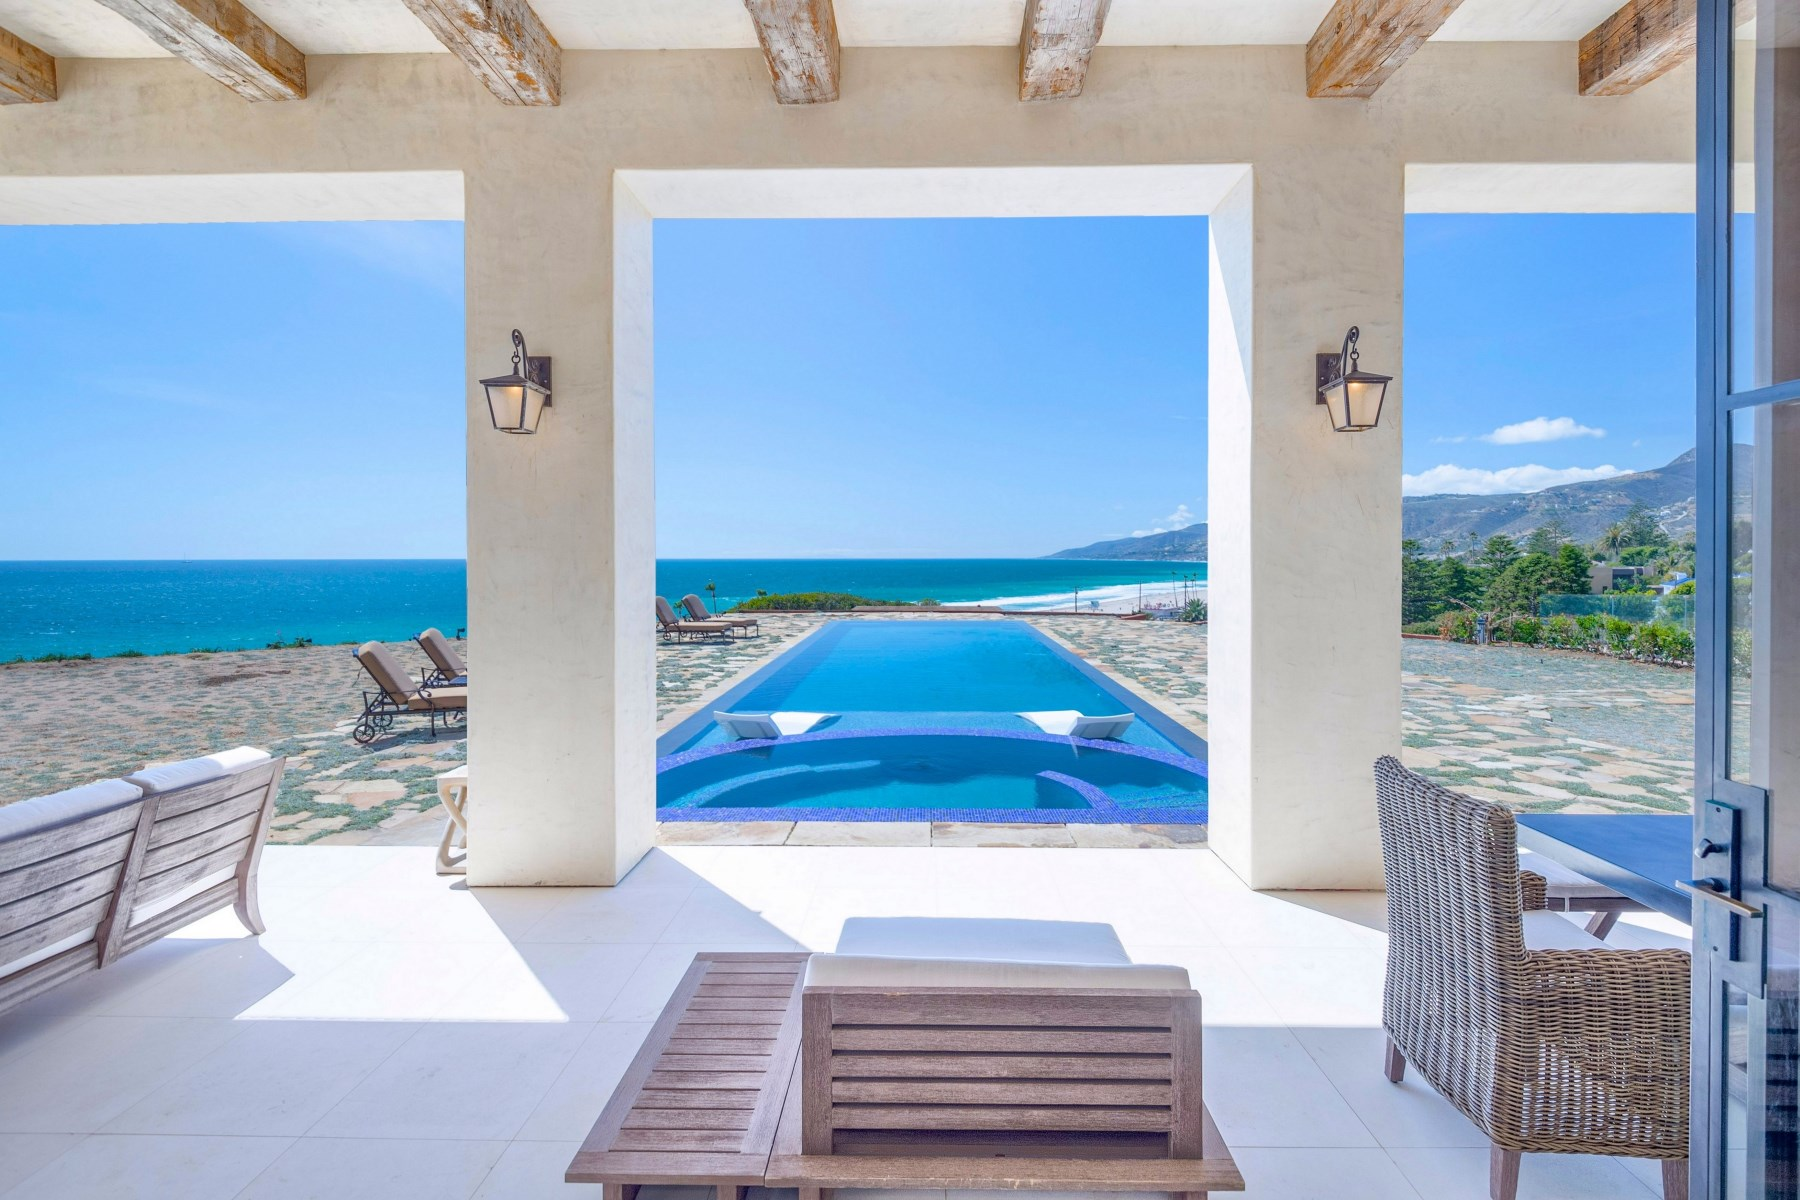 Other Residential for Sale at Villa Sogno - Malibu Malibu, California 90265 United States